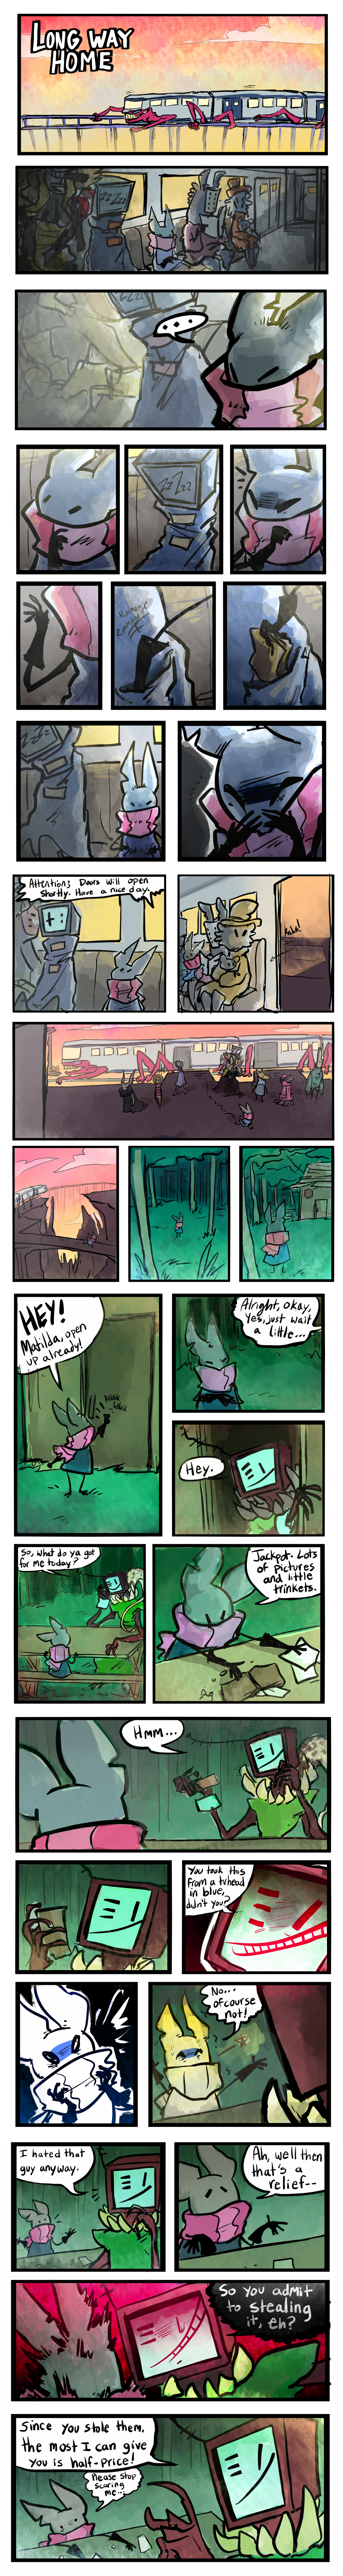 Long Way Home pt1 (24 hr comic day)